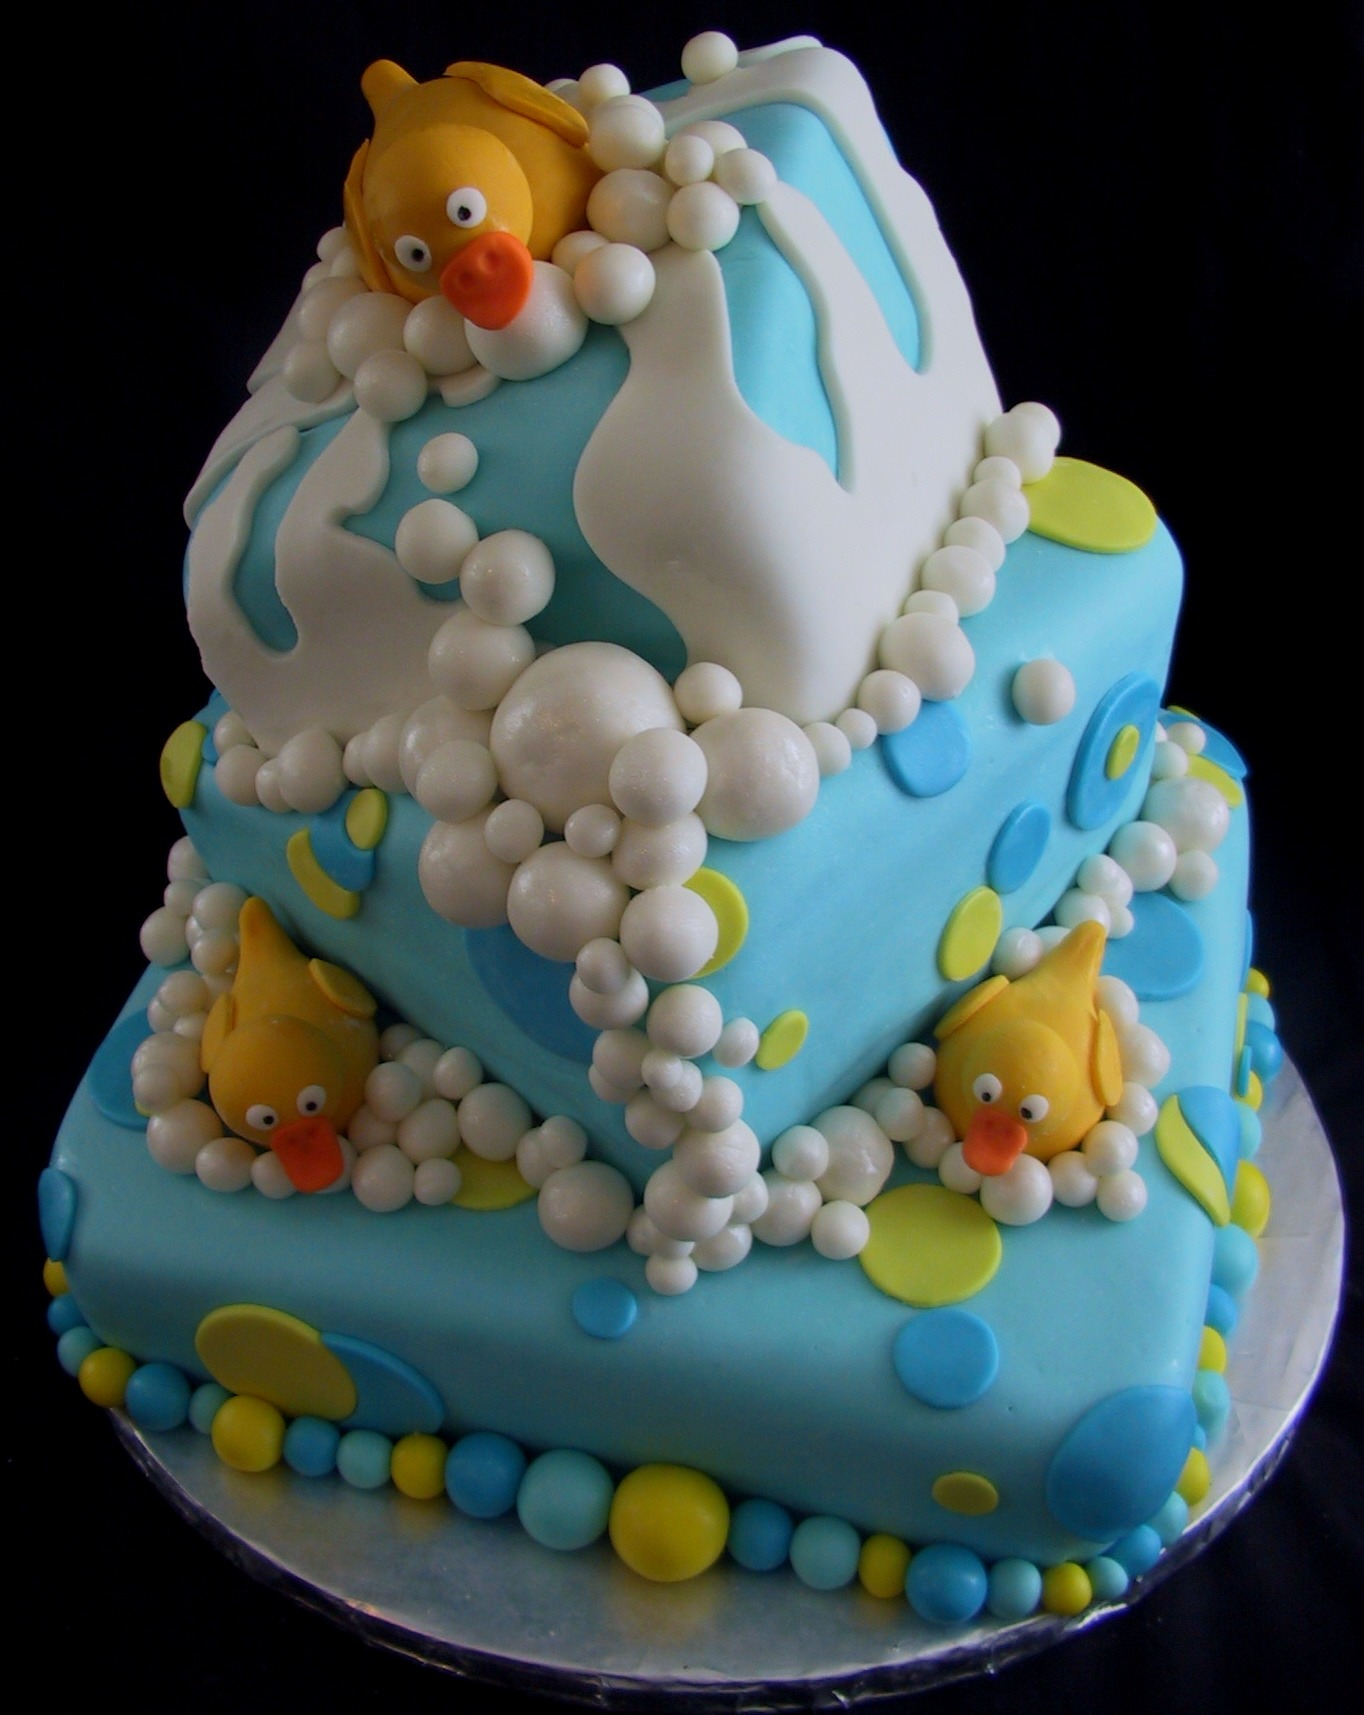 Pictures Of Baby Shower Cake Designs : 70 Baby Shower Cakes and Cupcakes Ideas